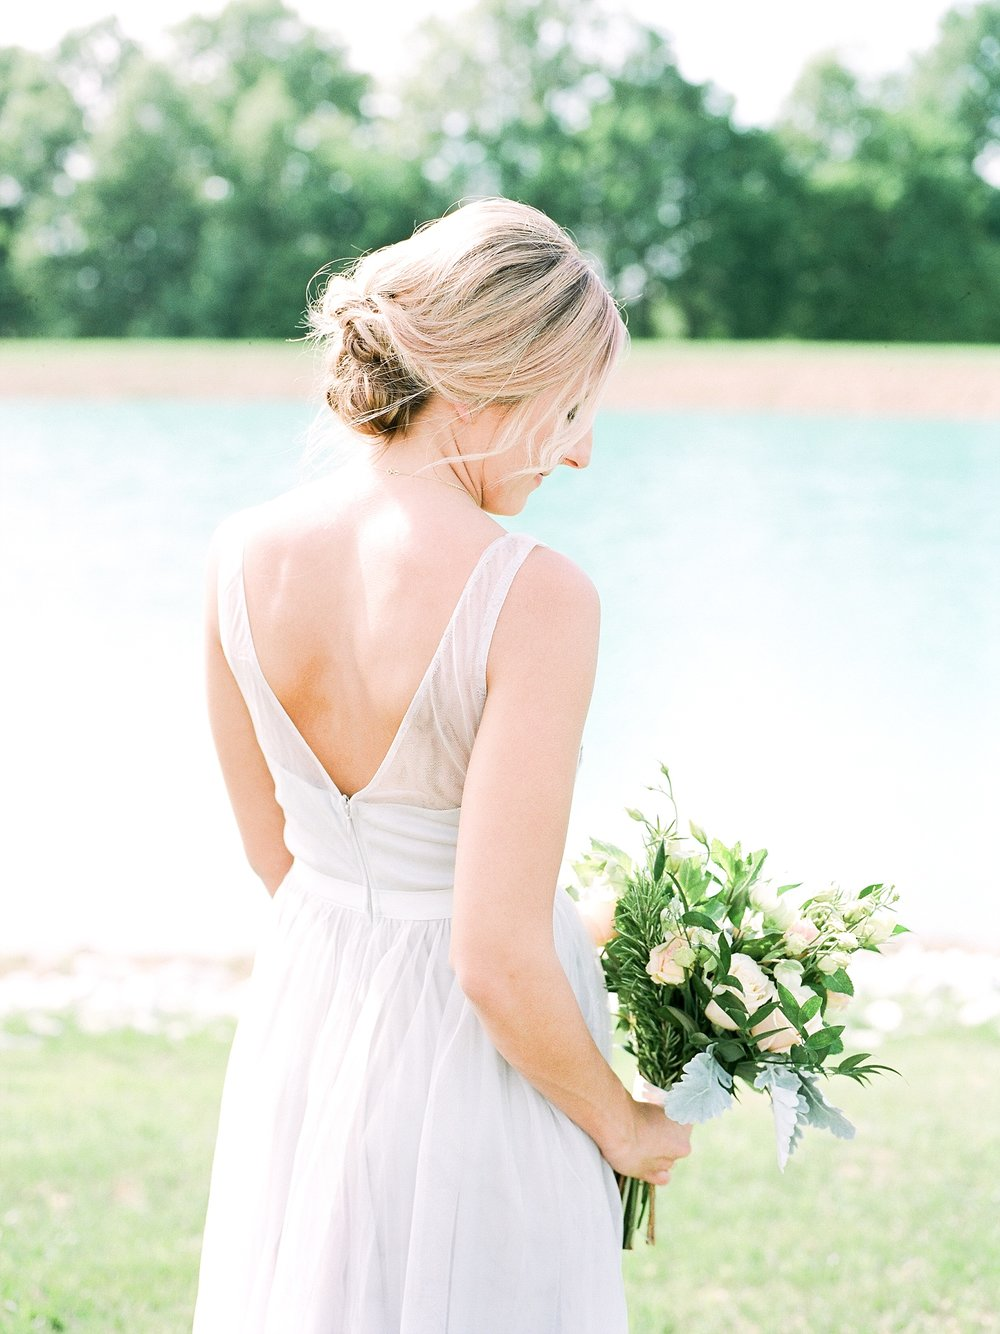 Textural Organic Wedding in All White Venue by Kelsi Kliethermes Wedding Photographer - Missouri, Midwest, and Destinations_0064.jpg